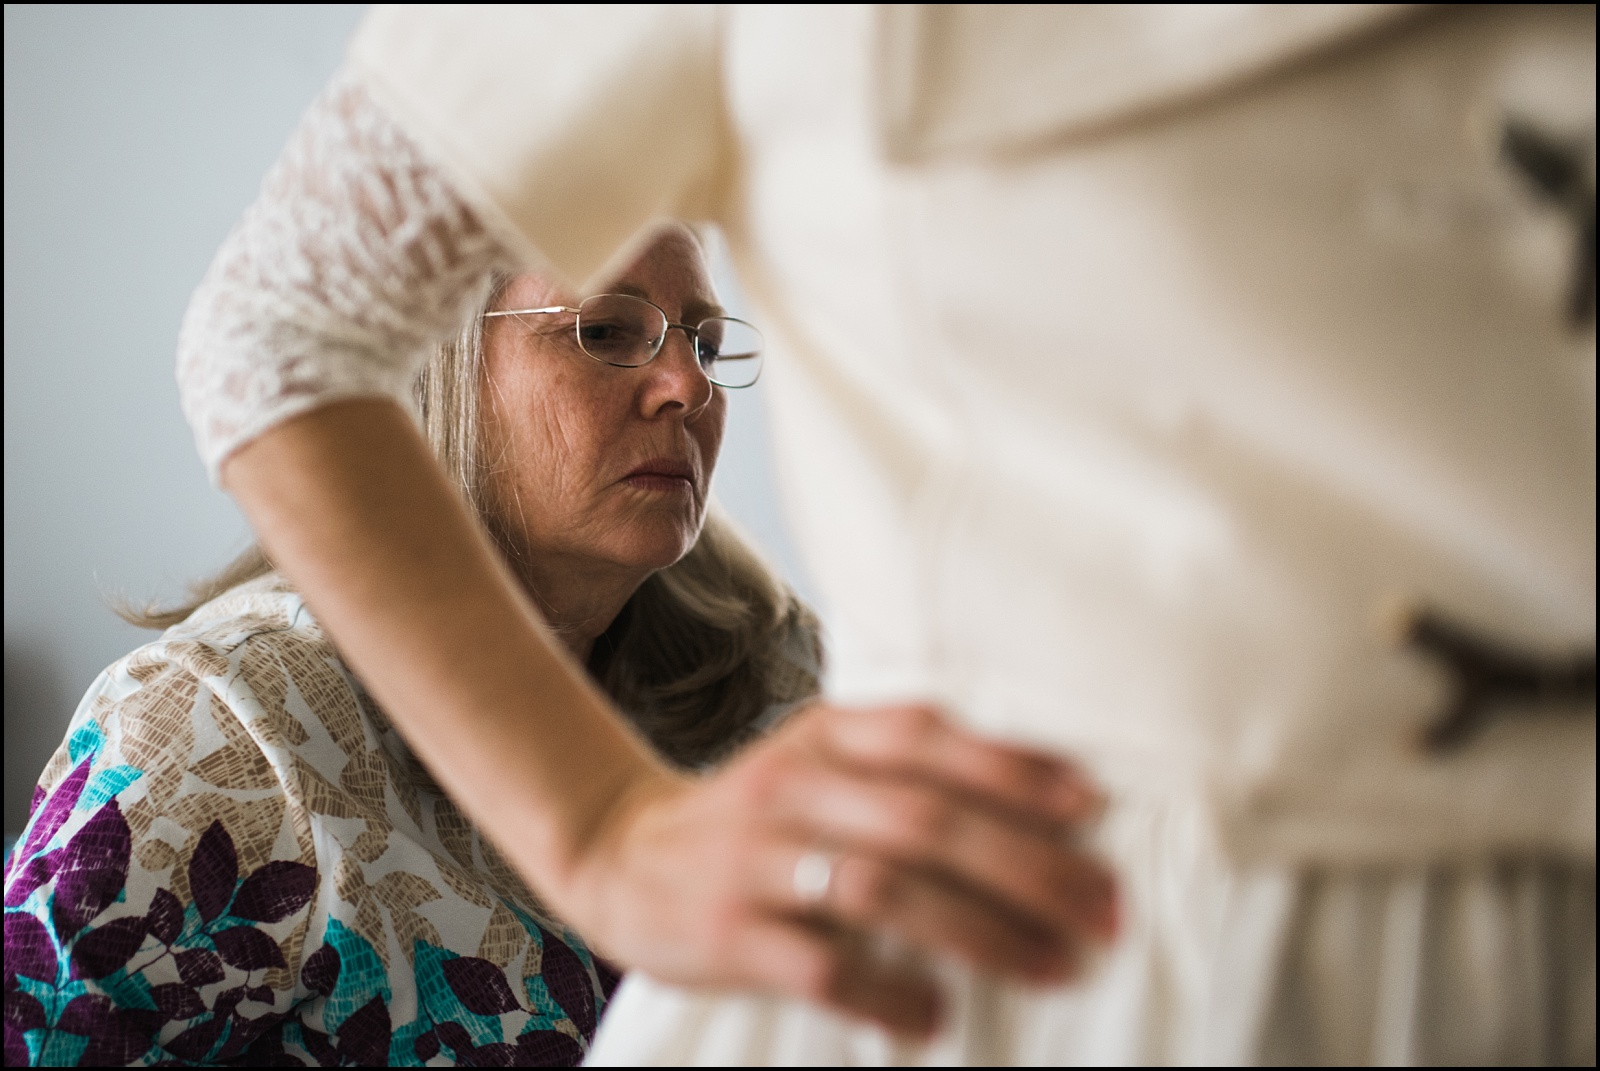 Mother helping bride get ready for wedding